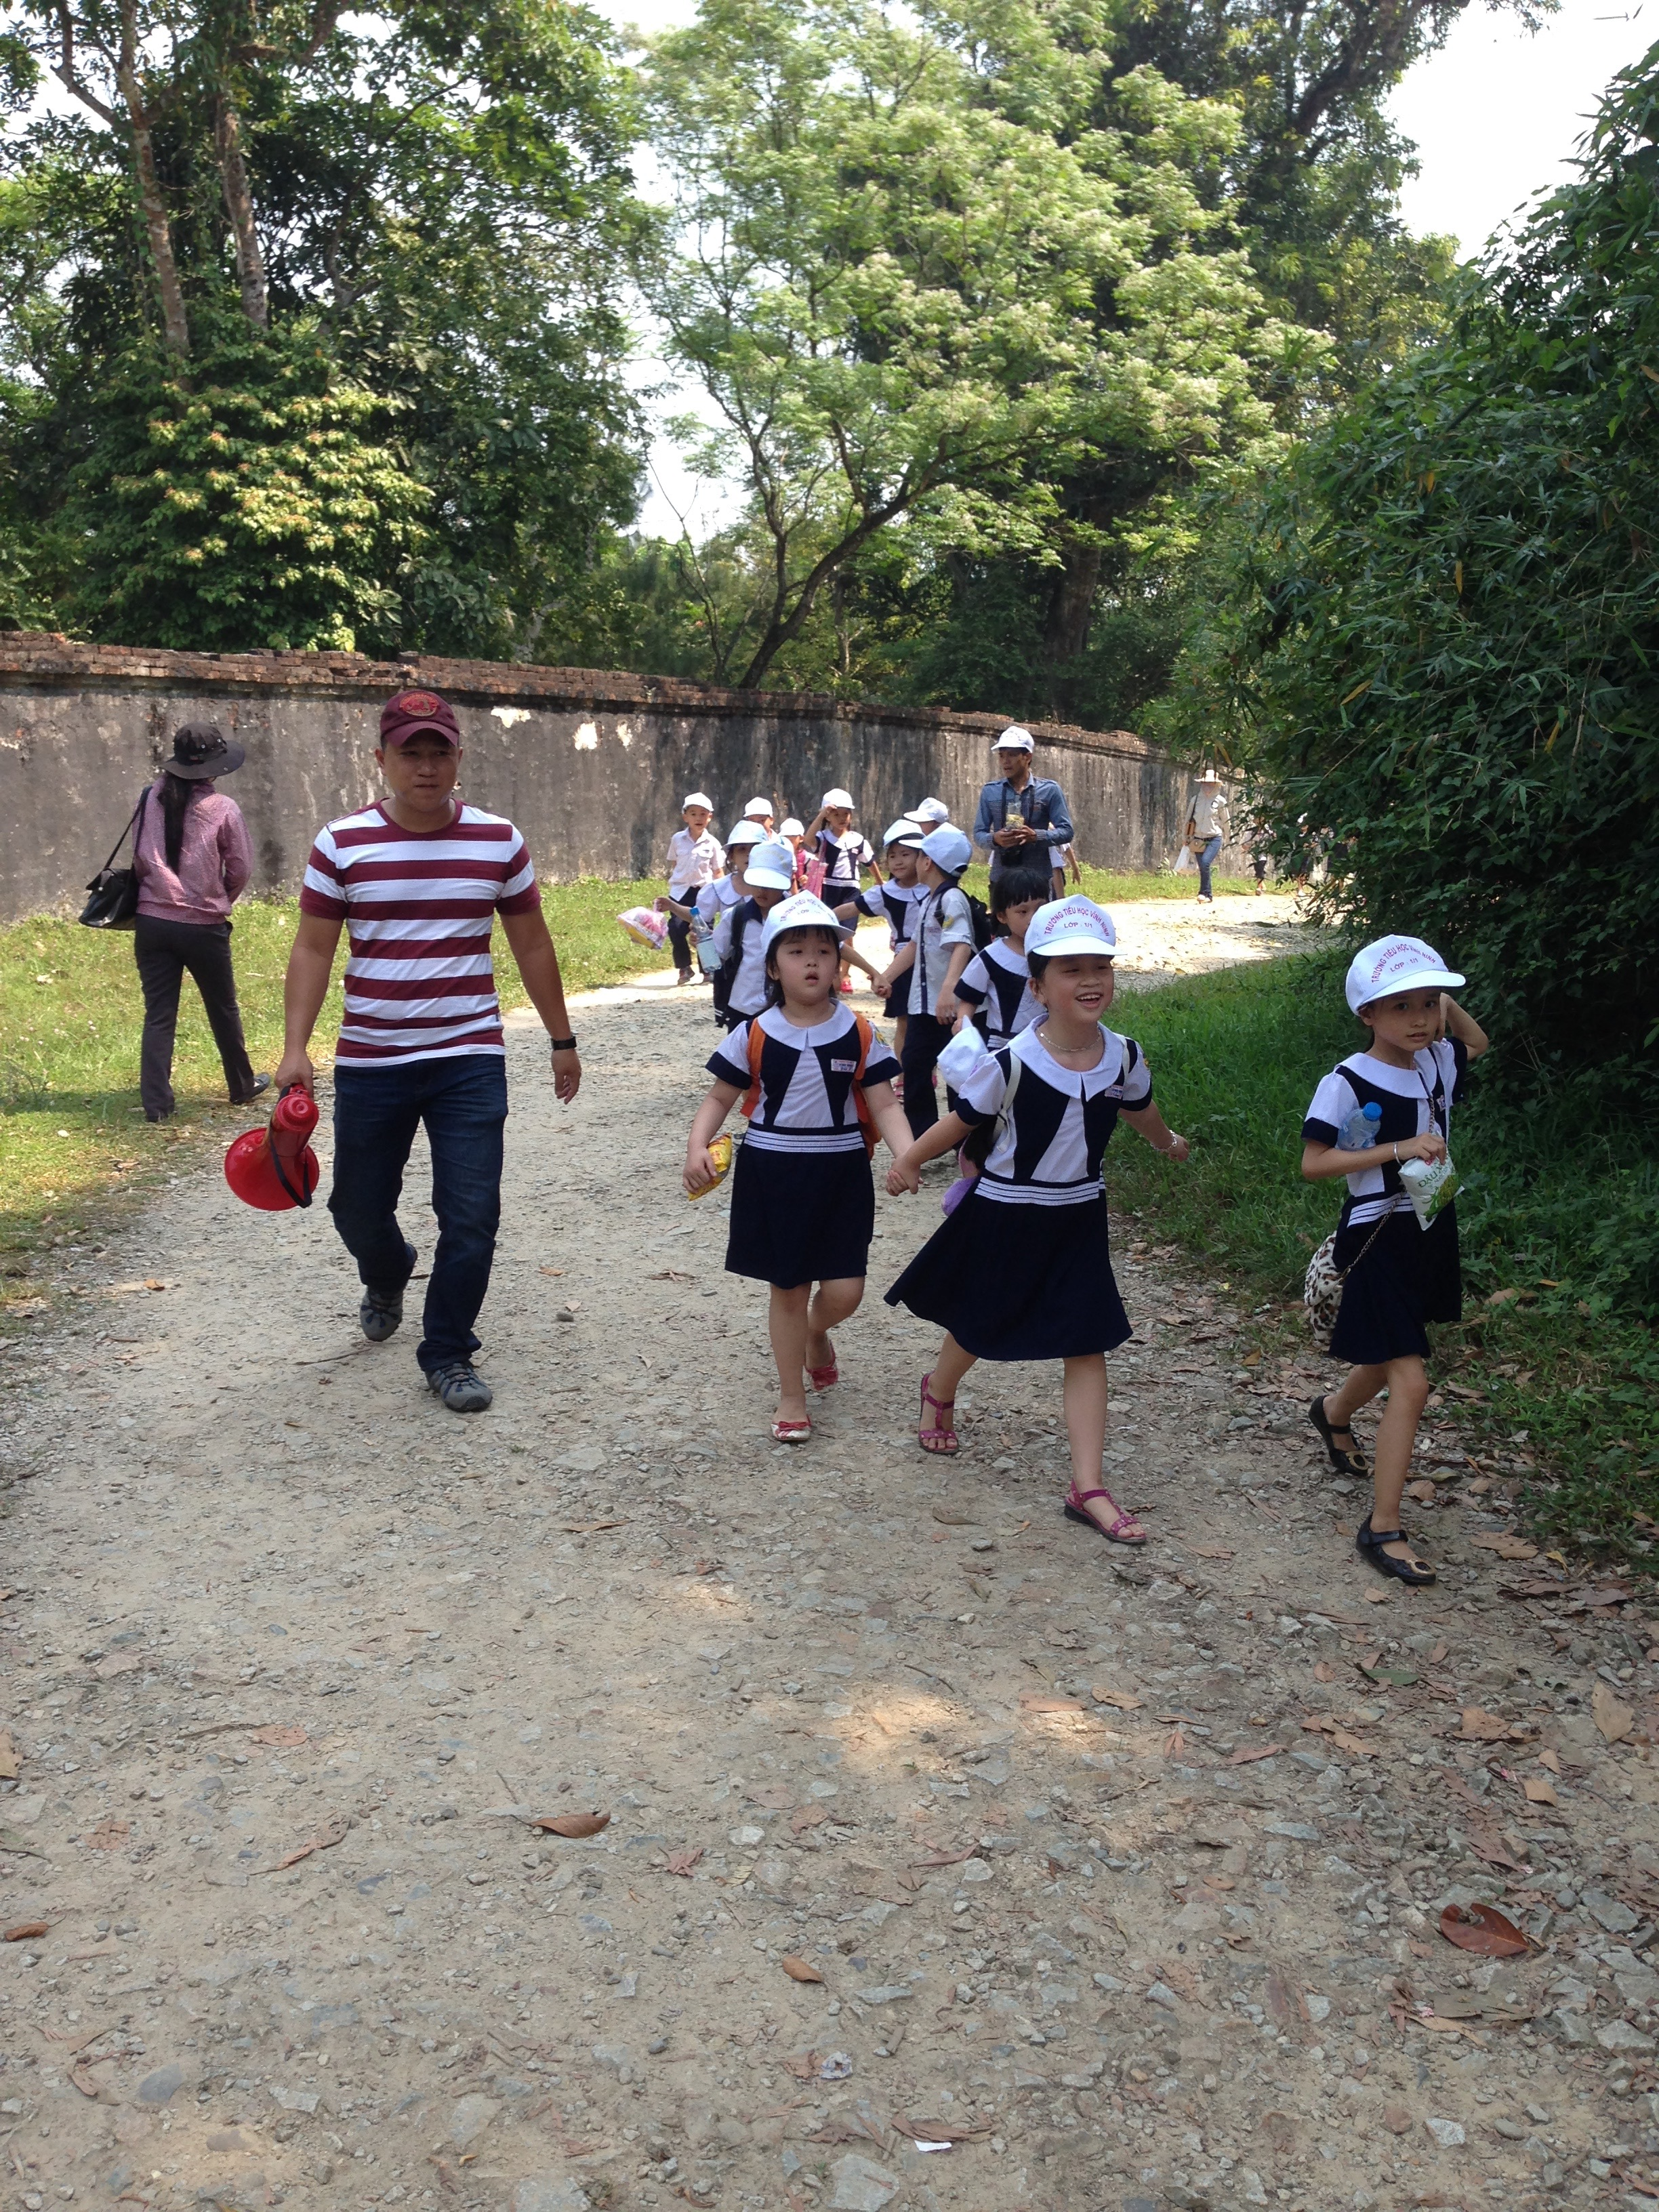 Primary school students on an excursion. Photo©kidcyber